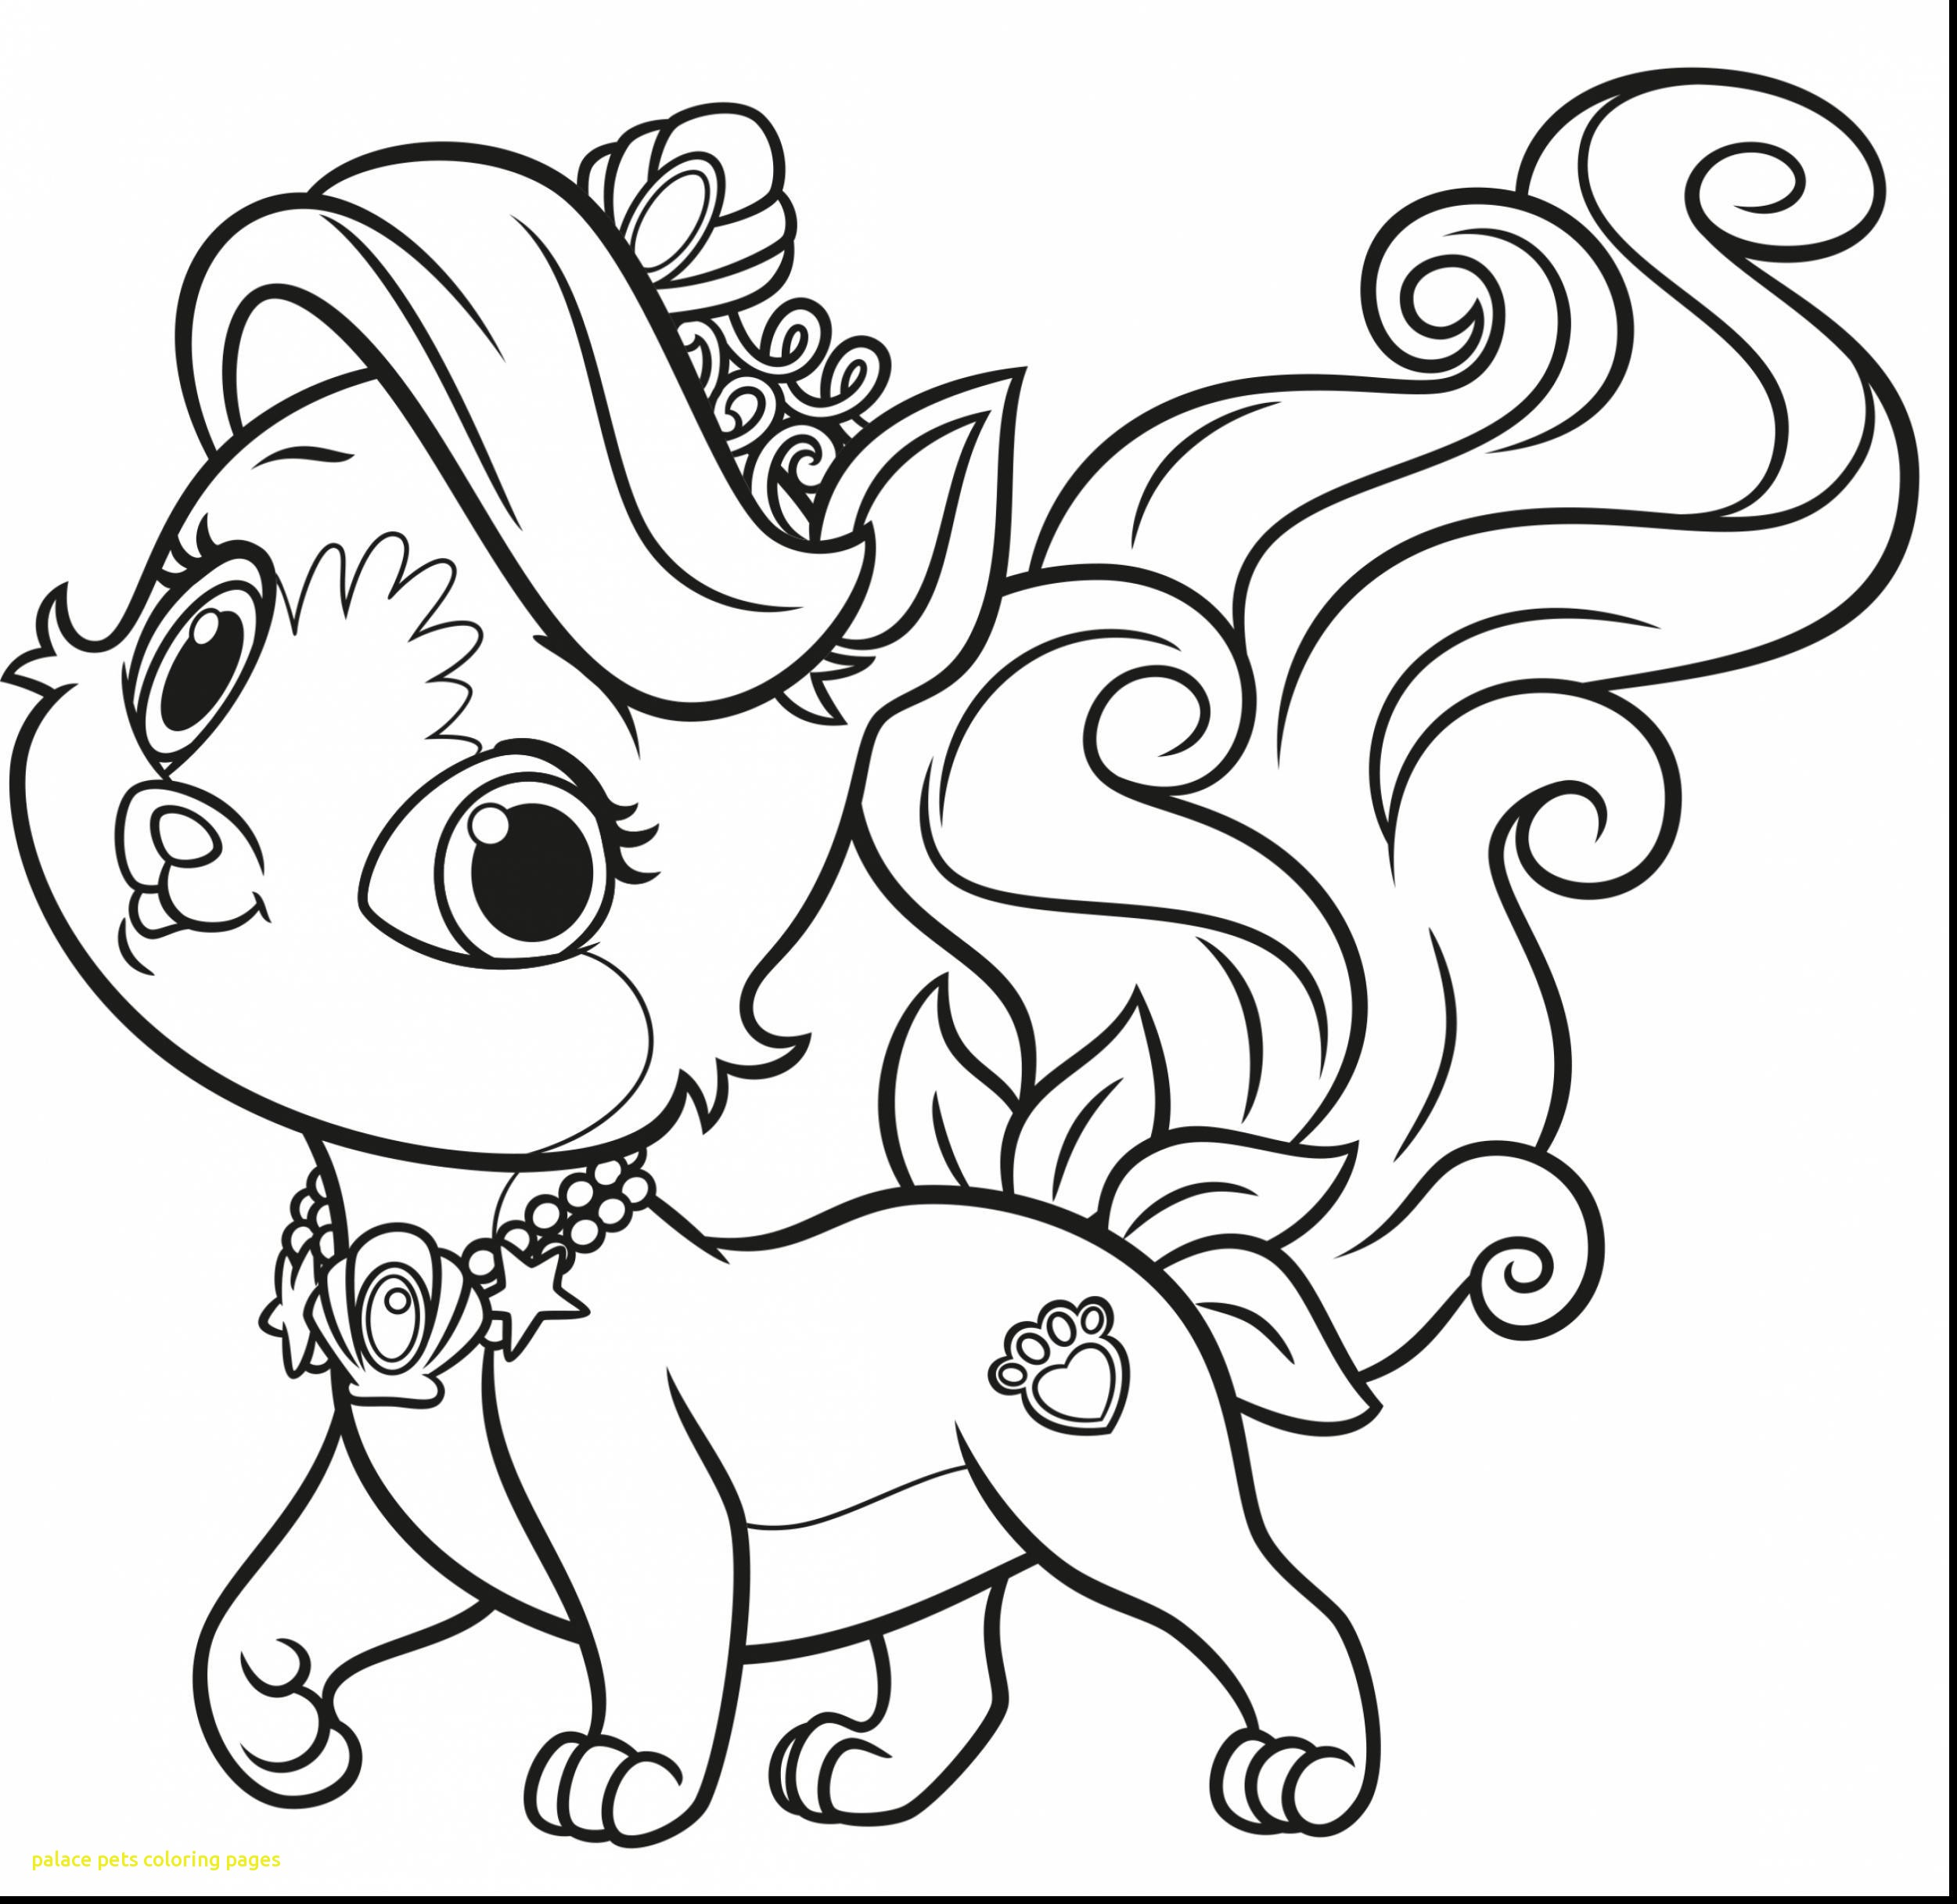 2501x2433 Palace Pets Coloring Pages With Coloring Pages Palace Pets